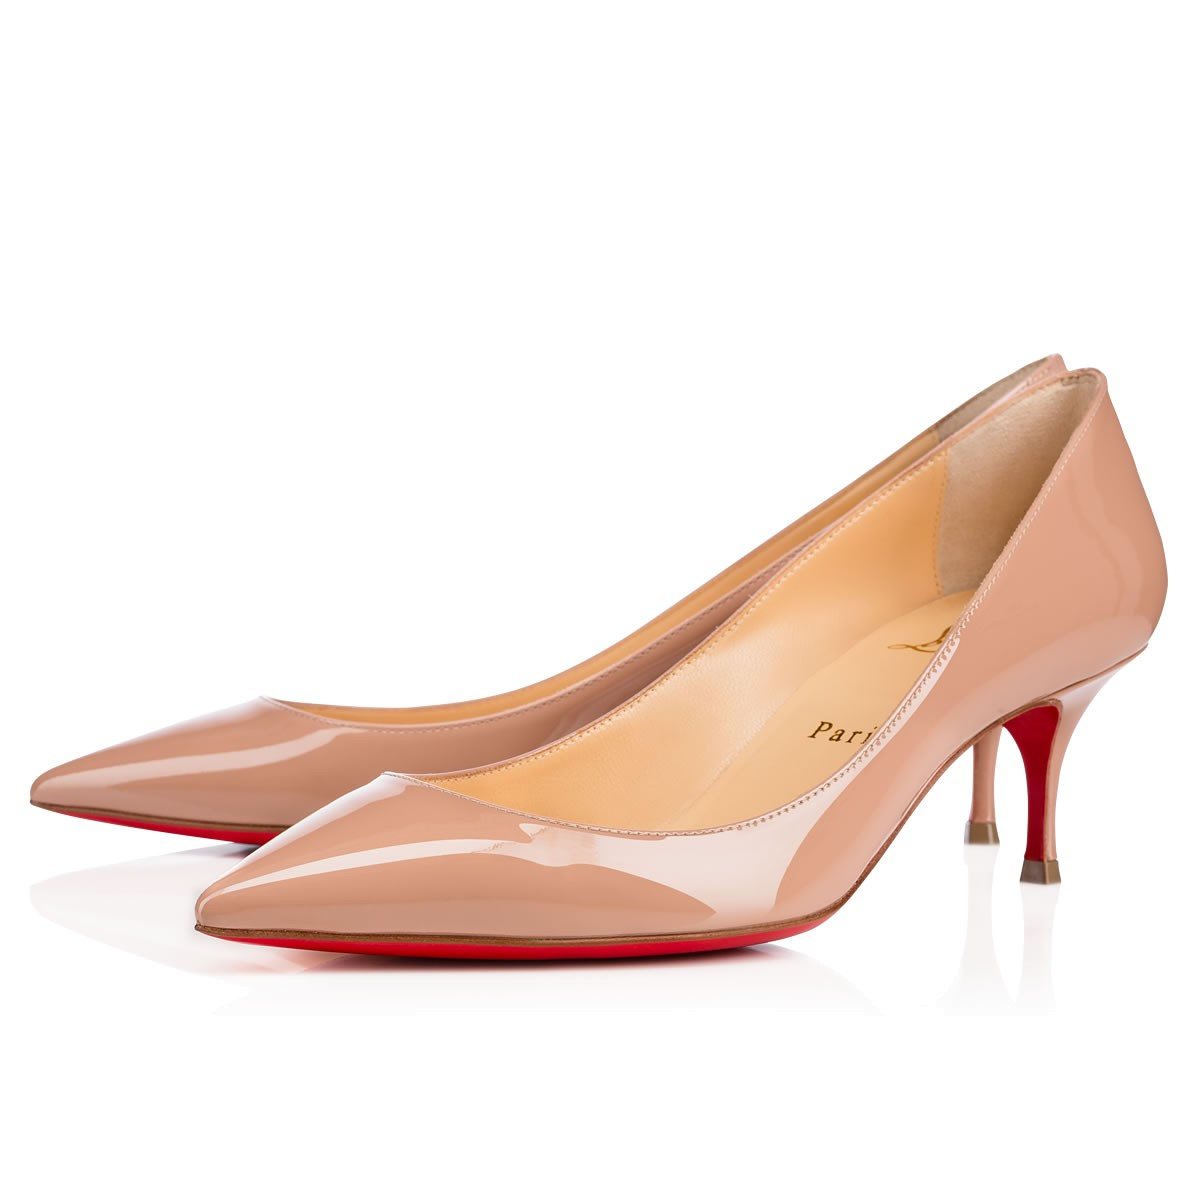 CHRISTIAN LOUBOUTIN 'Pigalle Follies' Pointy Toe Pump, Nude Patent